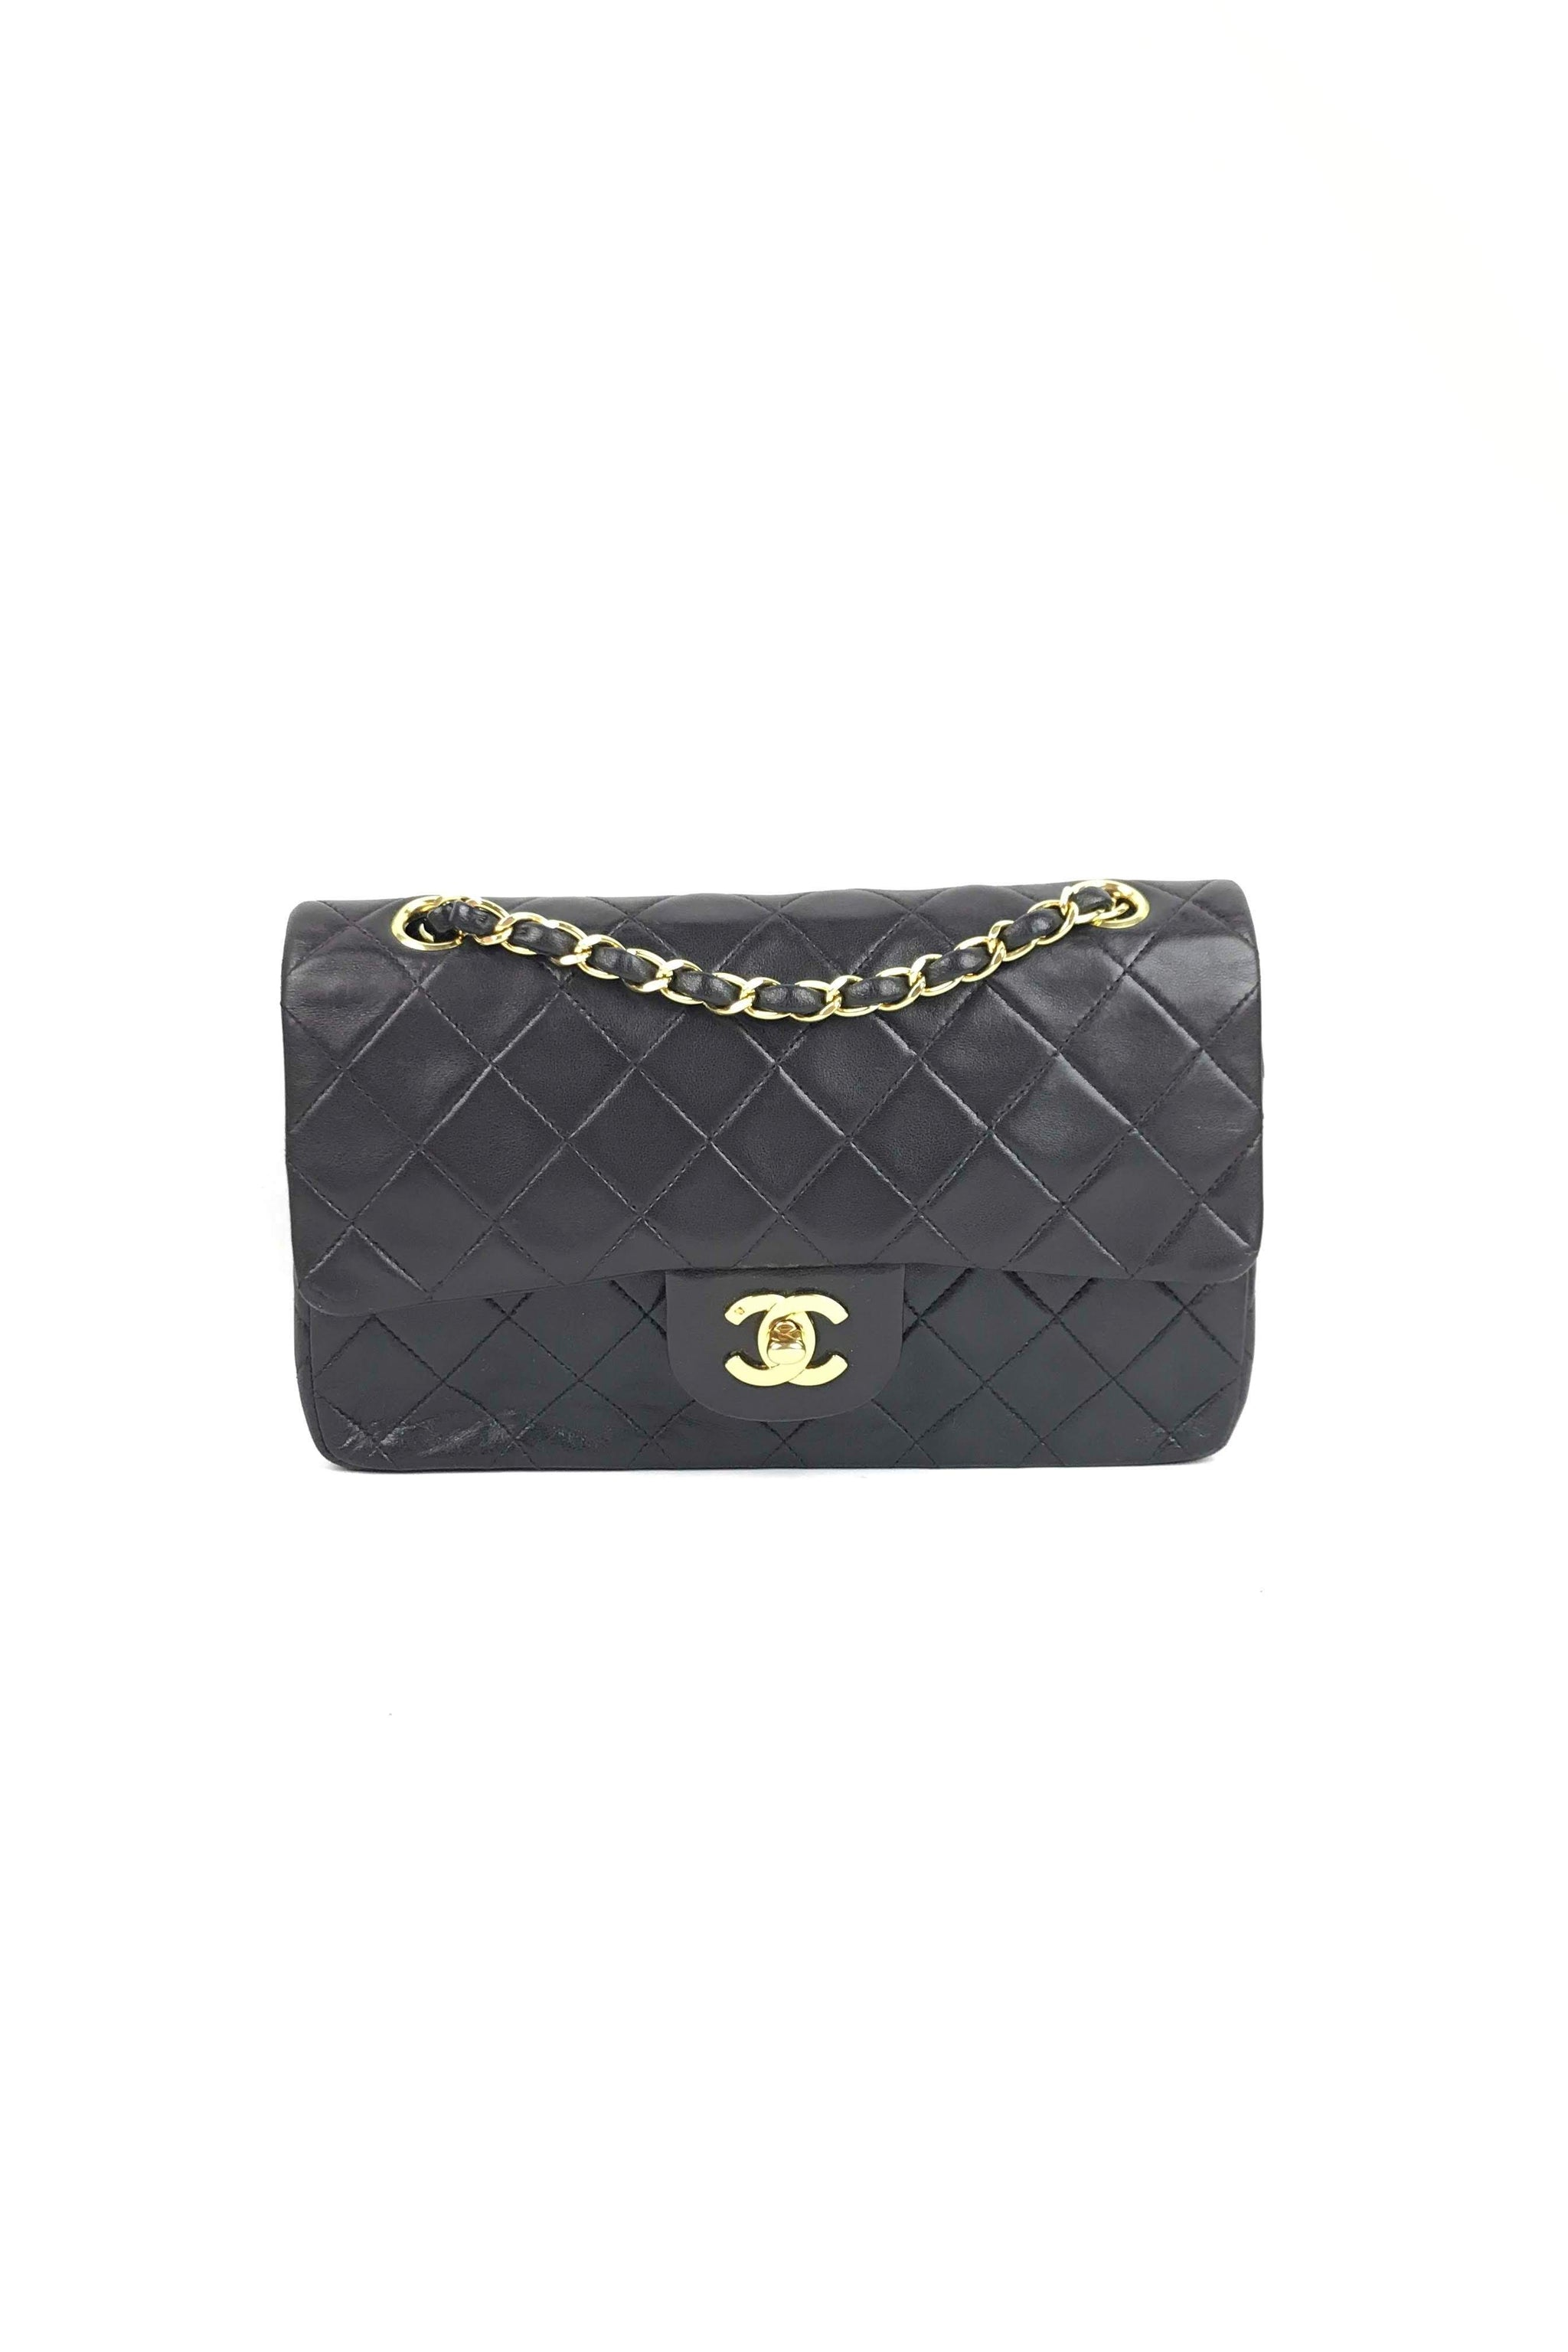 ef7e3cbe33ad Vintage Black Quilted Lambskin Small Double Flap Bag W/ 24K GHW – Haute  Classics